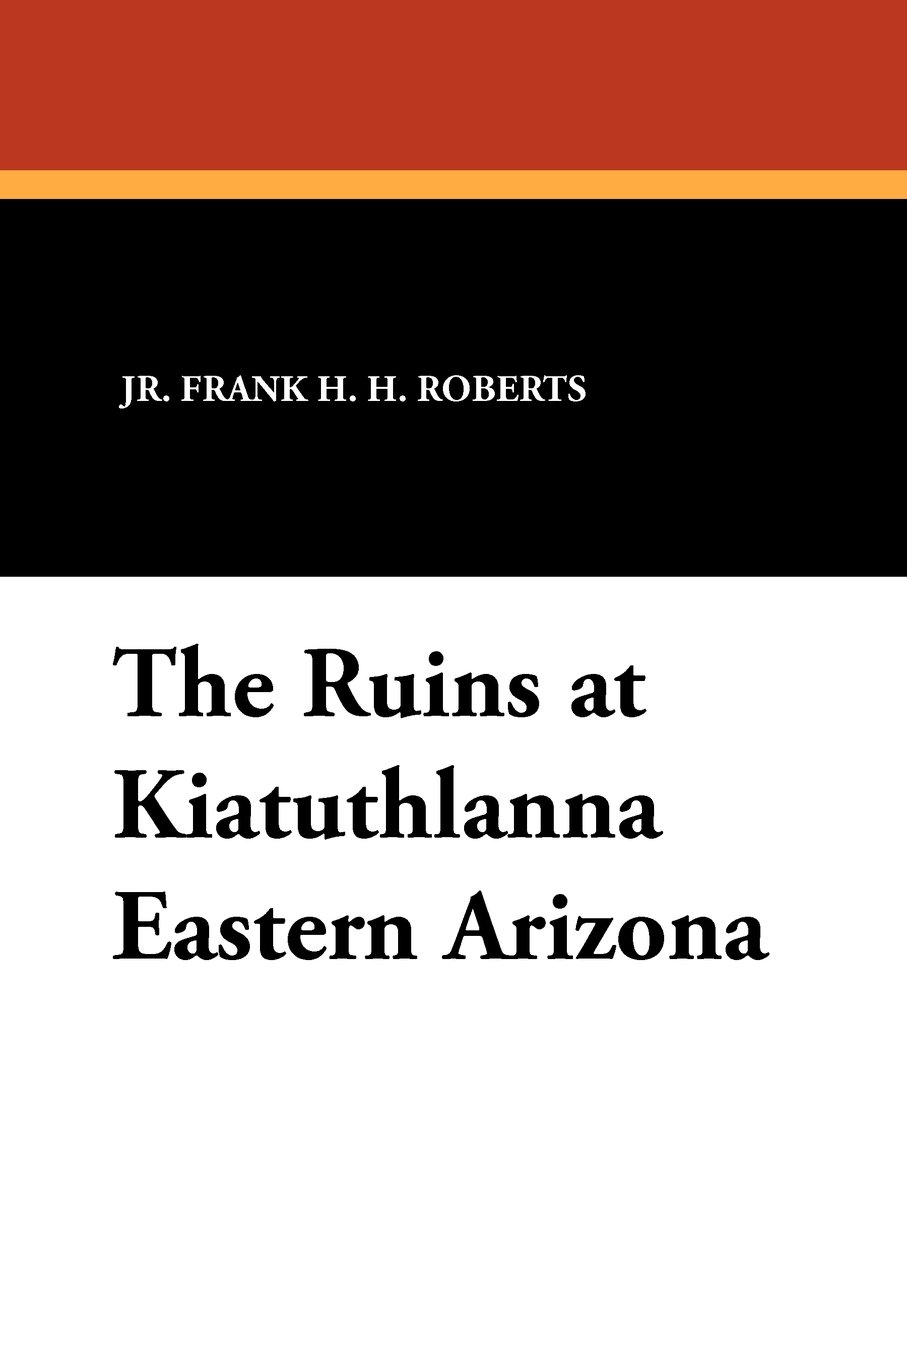 Download The Ruins at Kiatuthlanna Eastern Arizona PDF